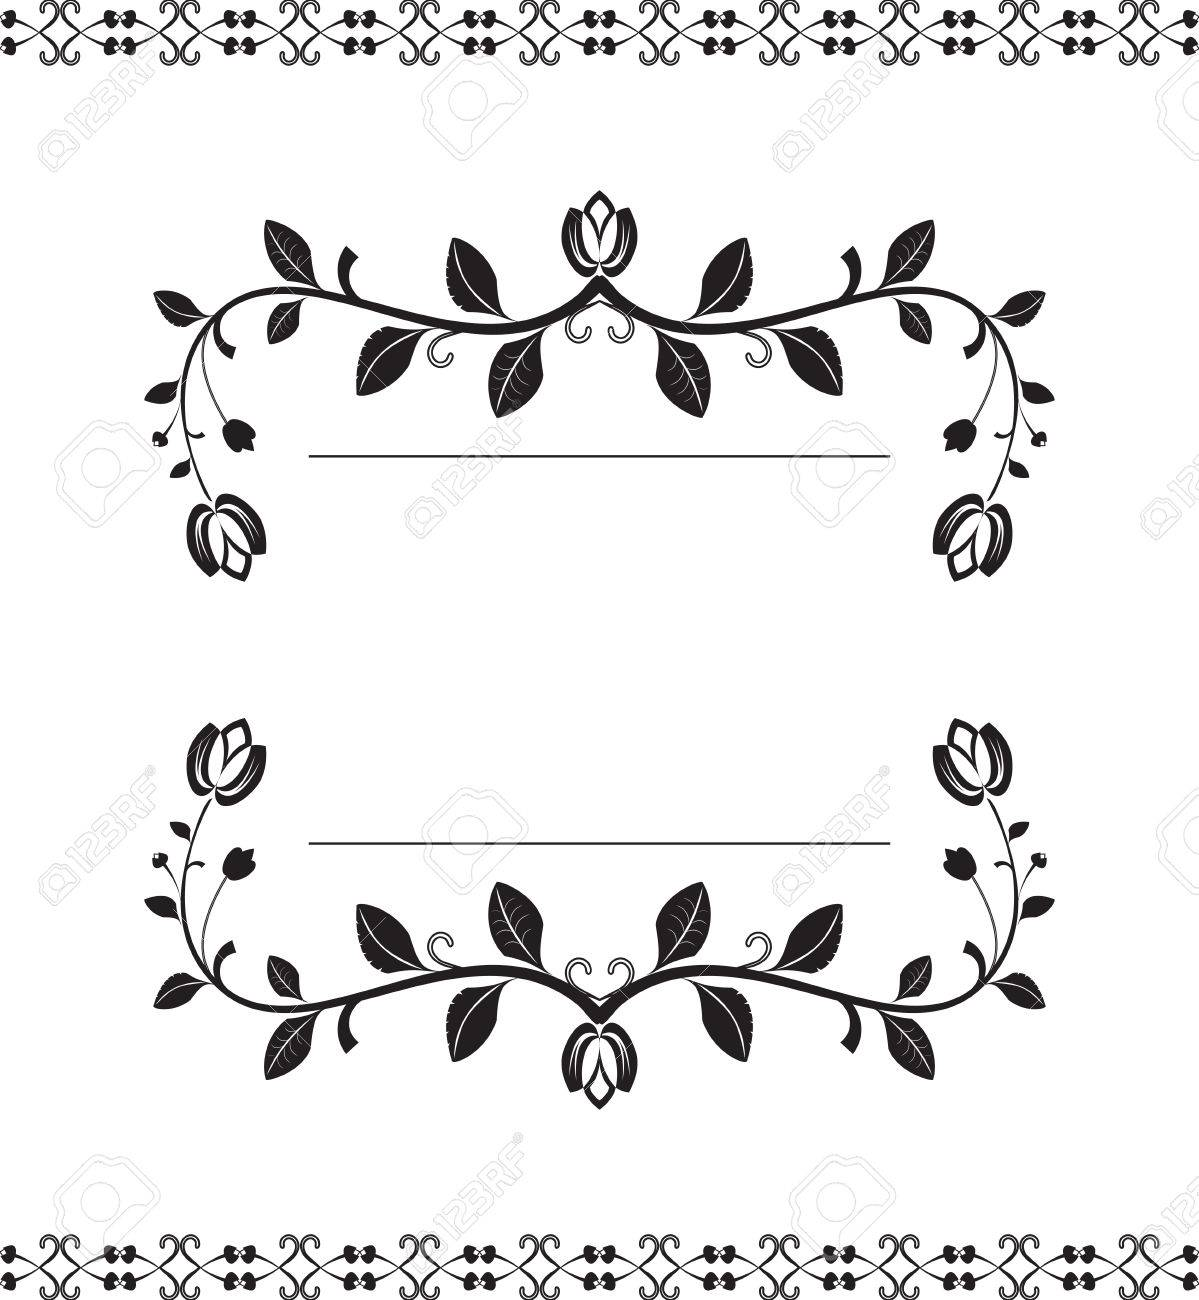 Vector Black Decorative Vertical Frame Border With Vintage Floral